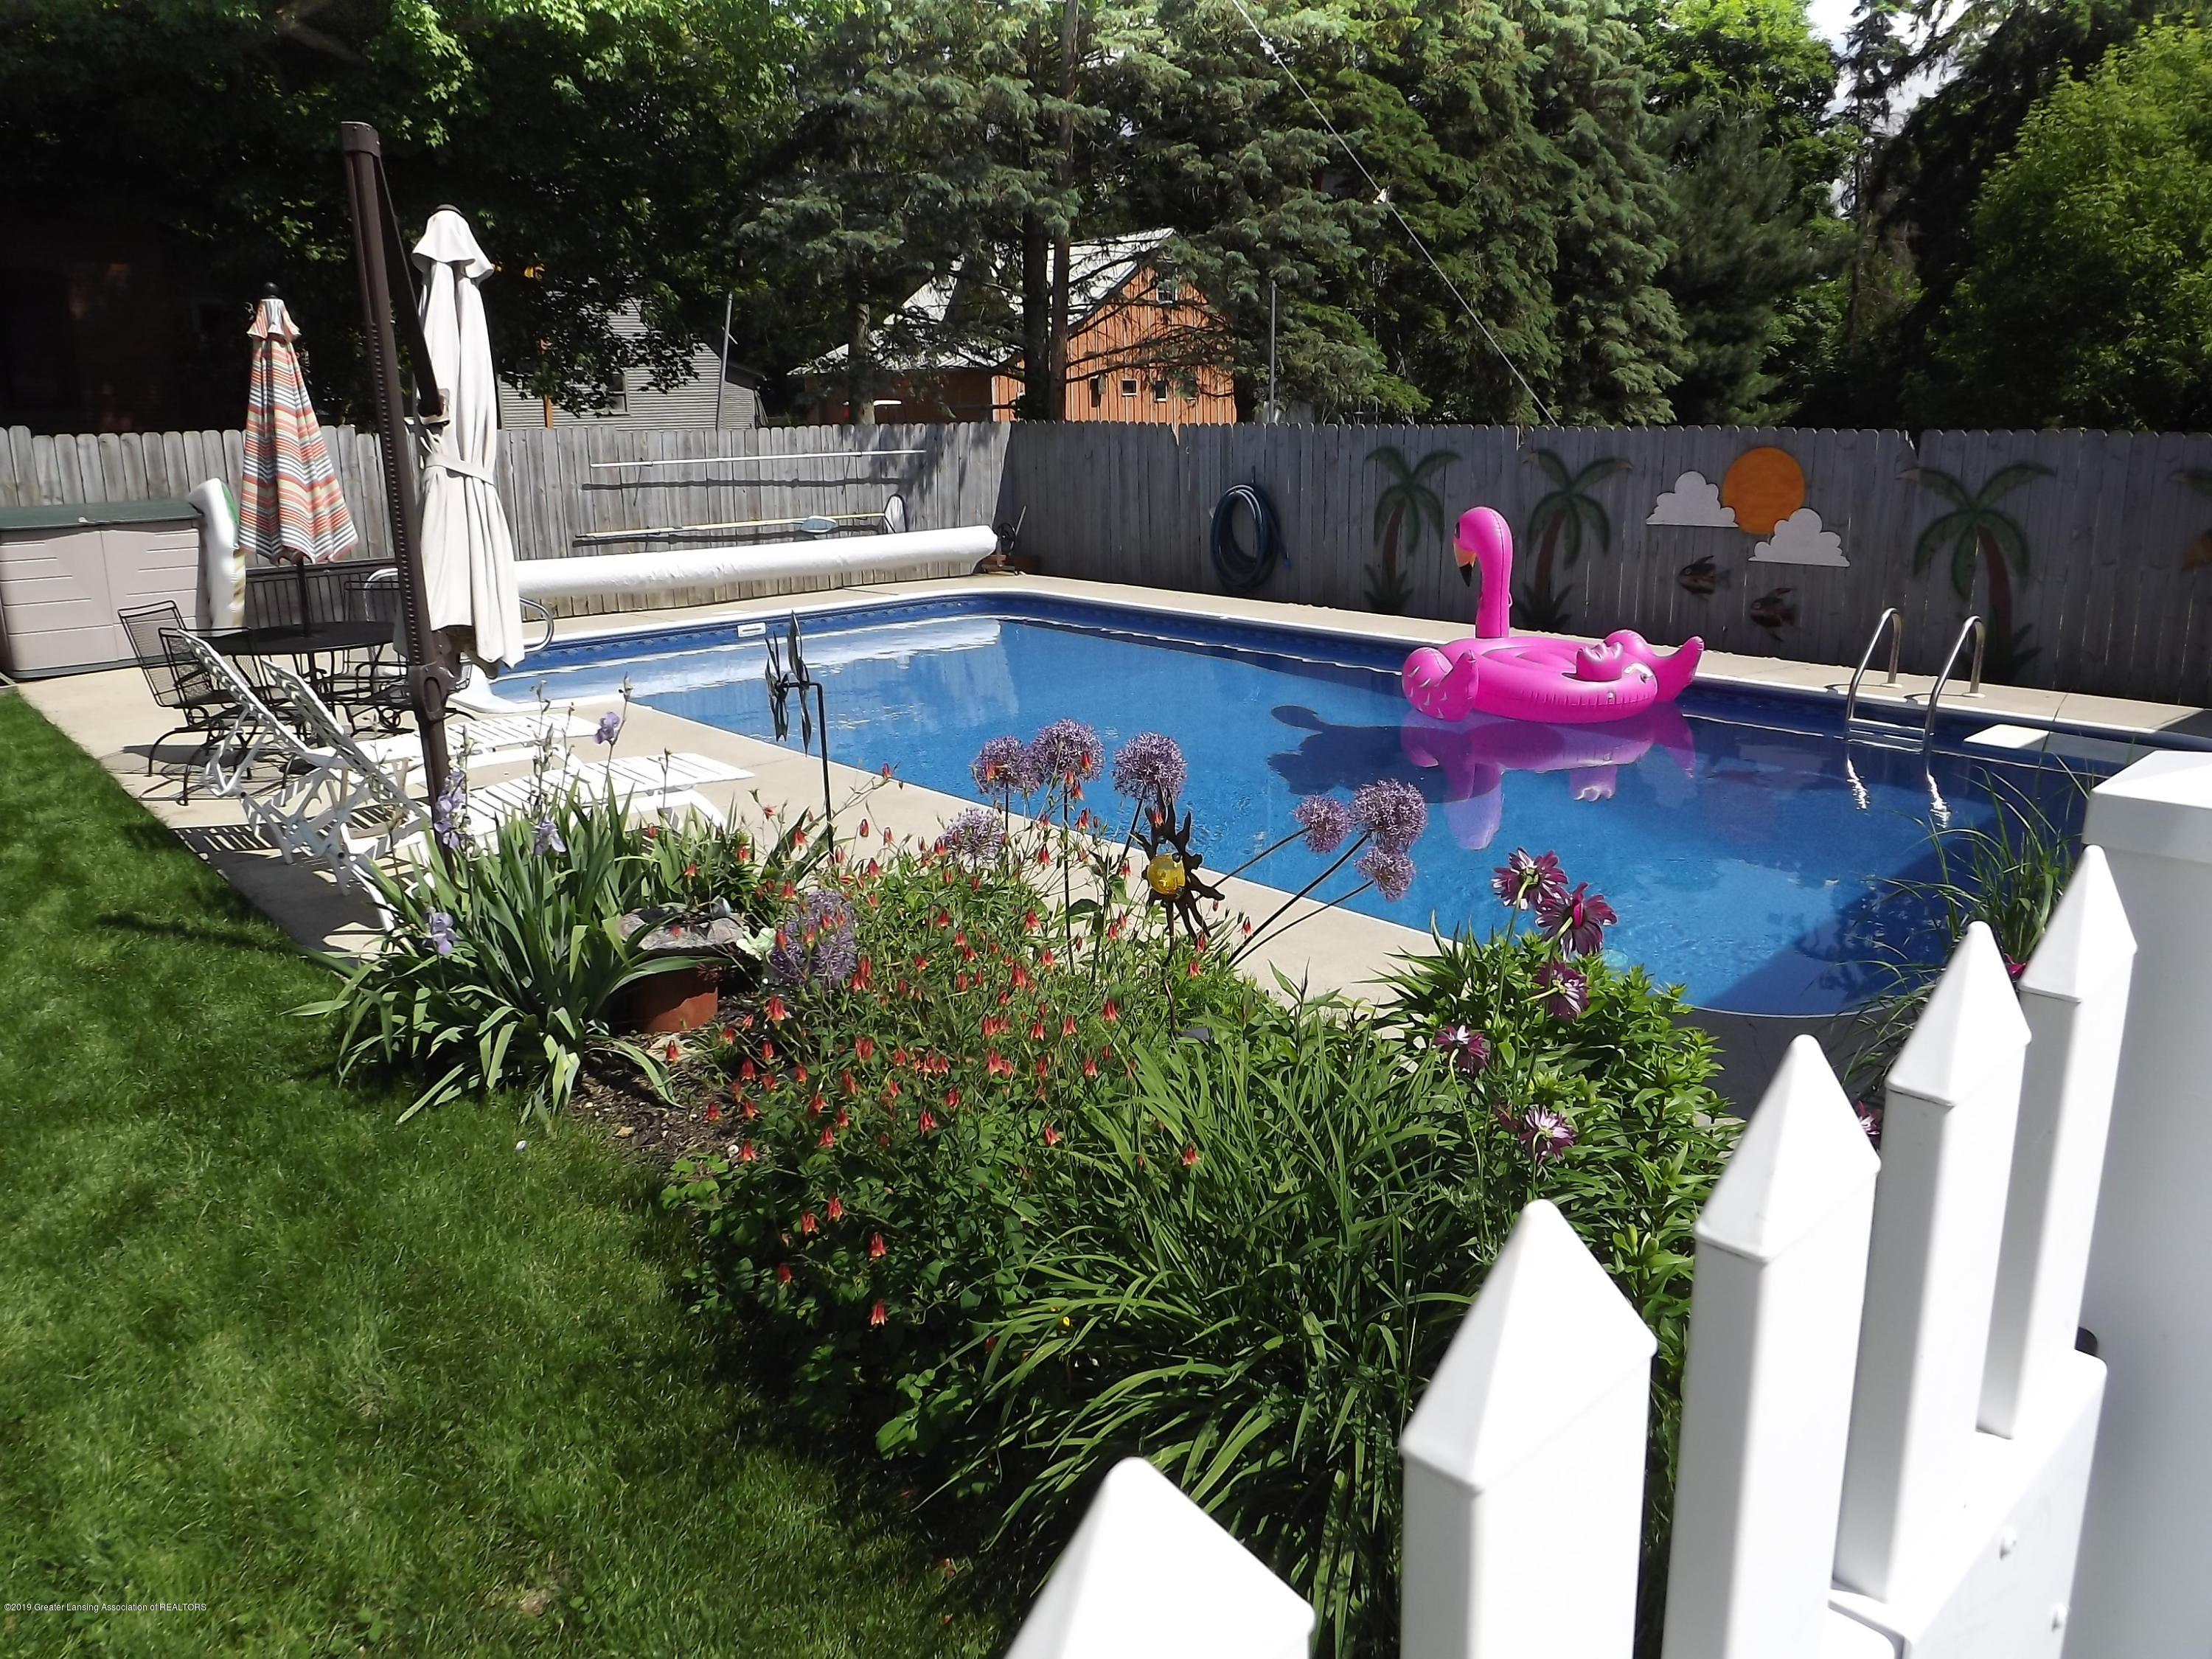 211 W Seminary St - 3 Pool - 3